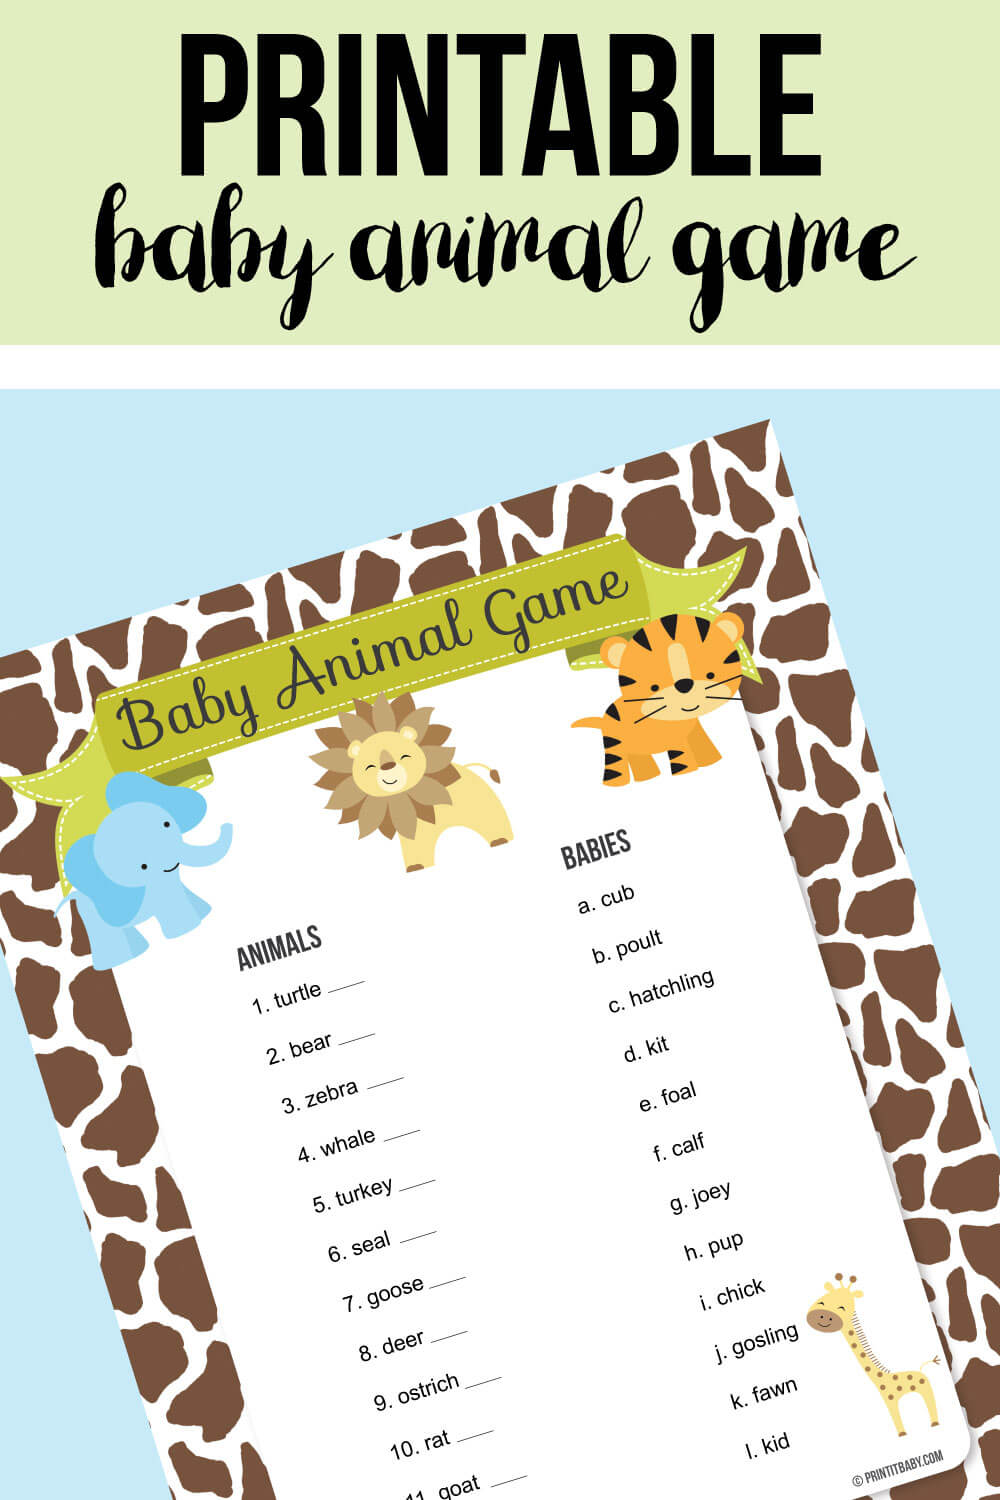 Image for printable baby animal jungle game